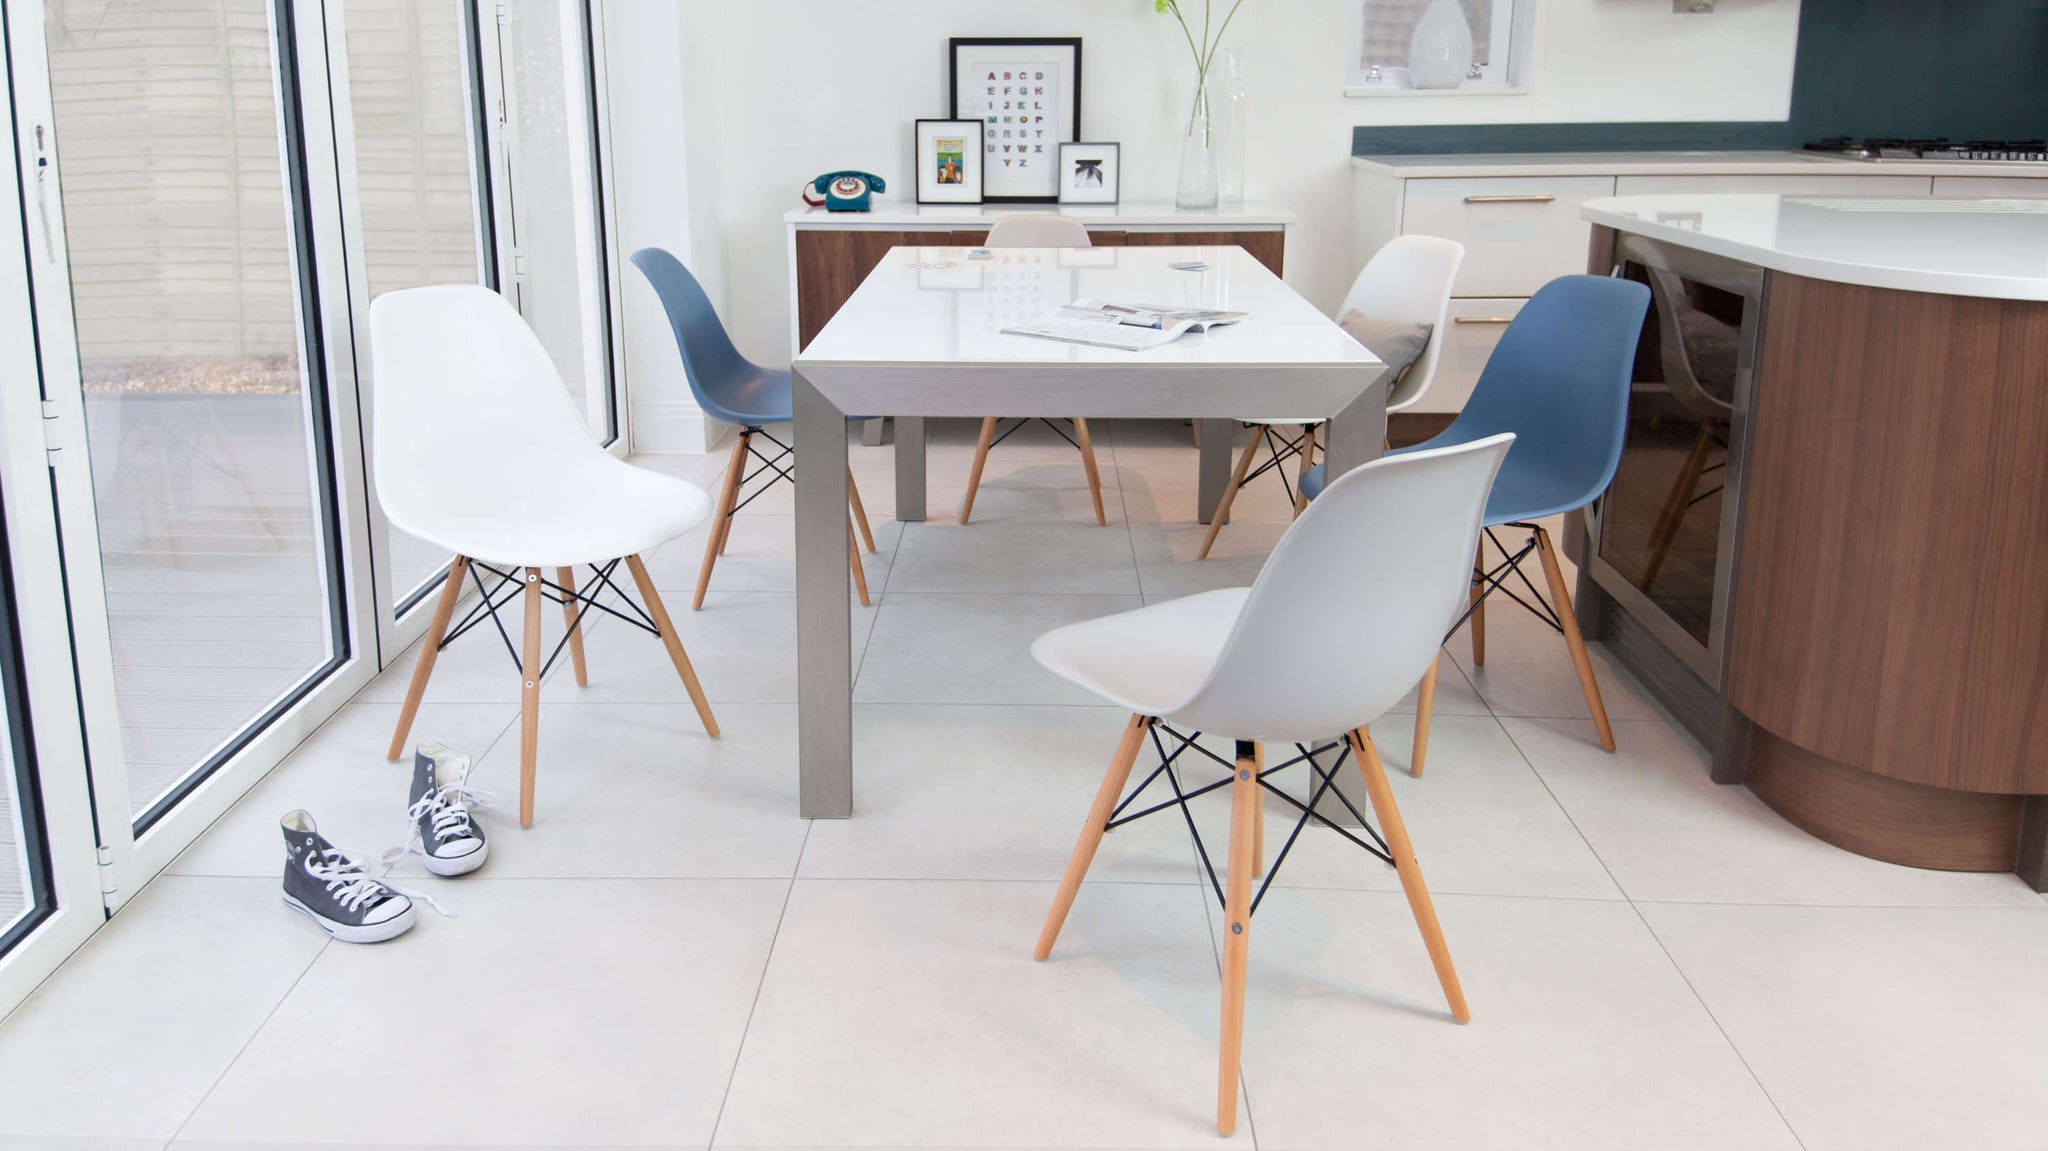 Comfortable Plastic Chairs and White Gloss Dining Table